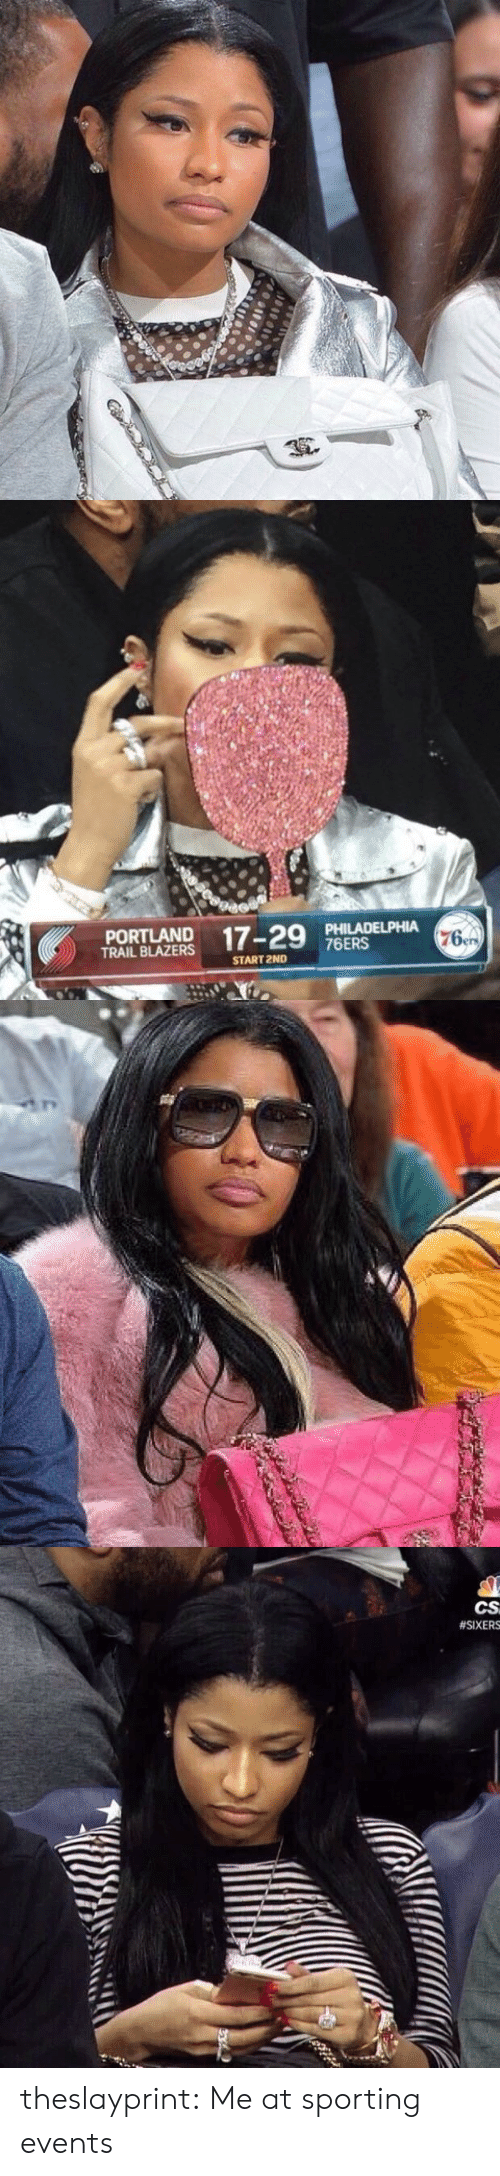 Trailing: PORTLAND  TRAIL BLAZERS  PHILADELPHIA  76ERS  76er  START 2ND   CS  theslayprint: Me at sporting events